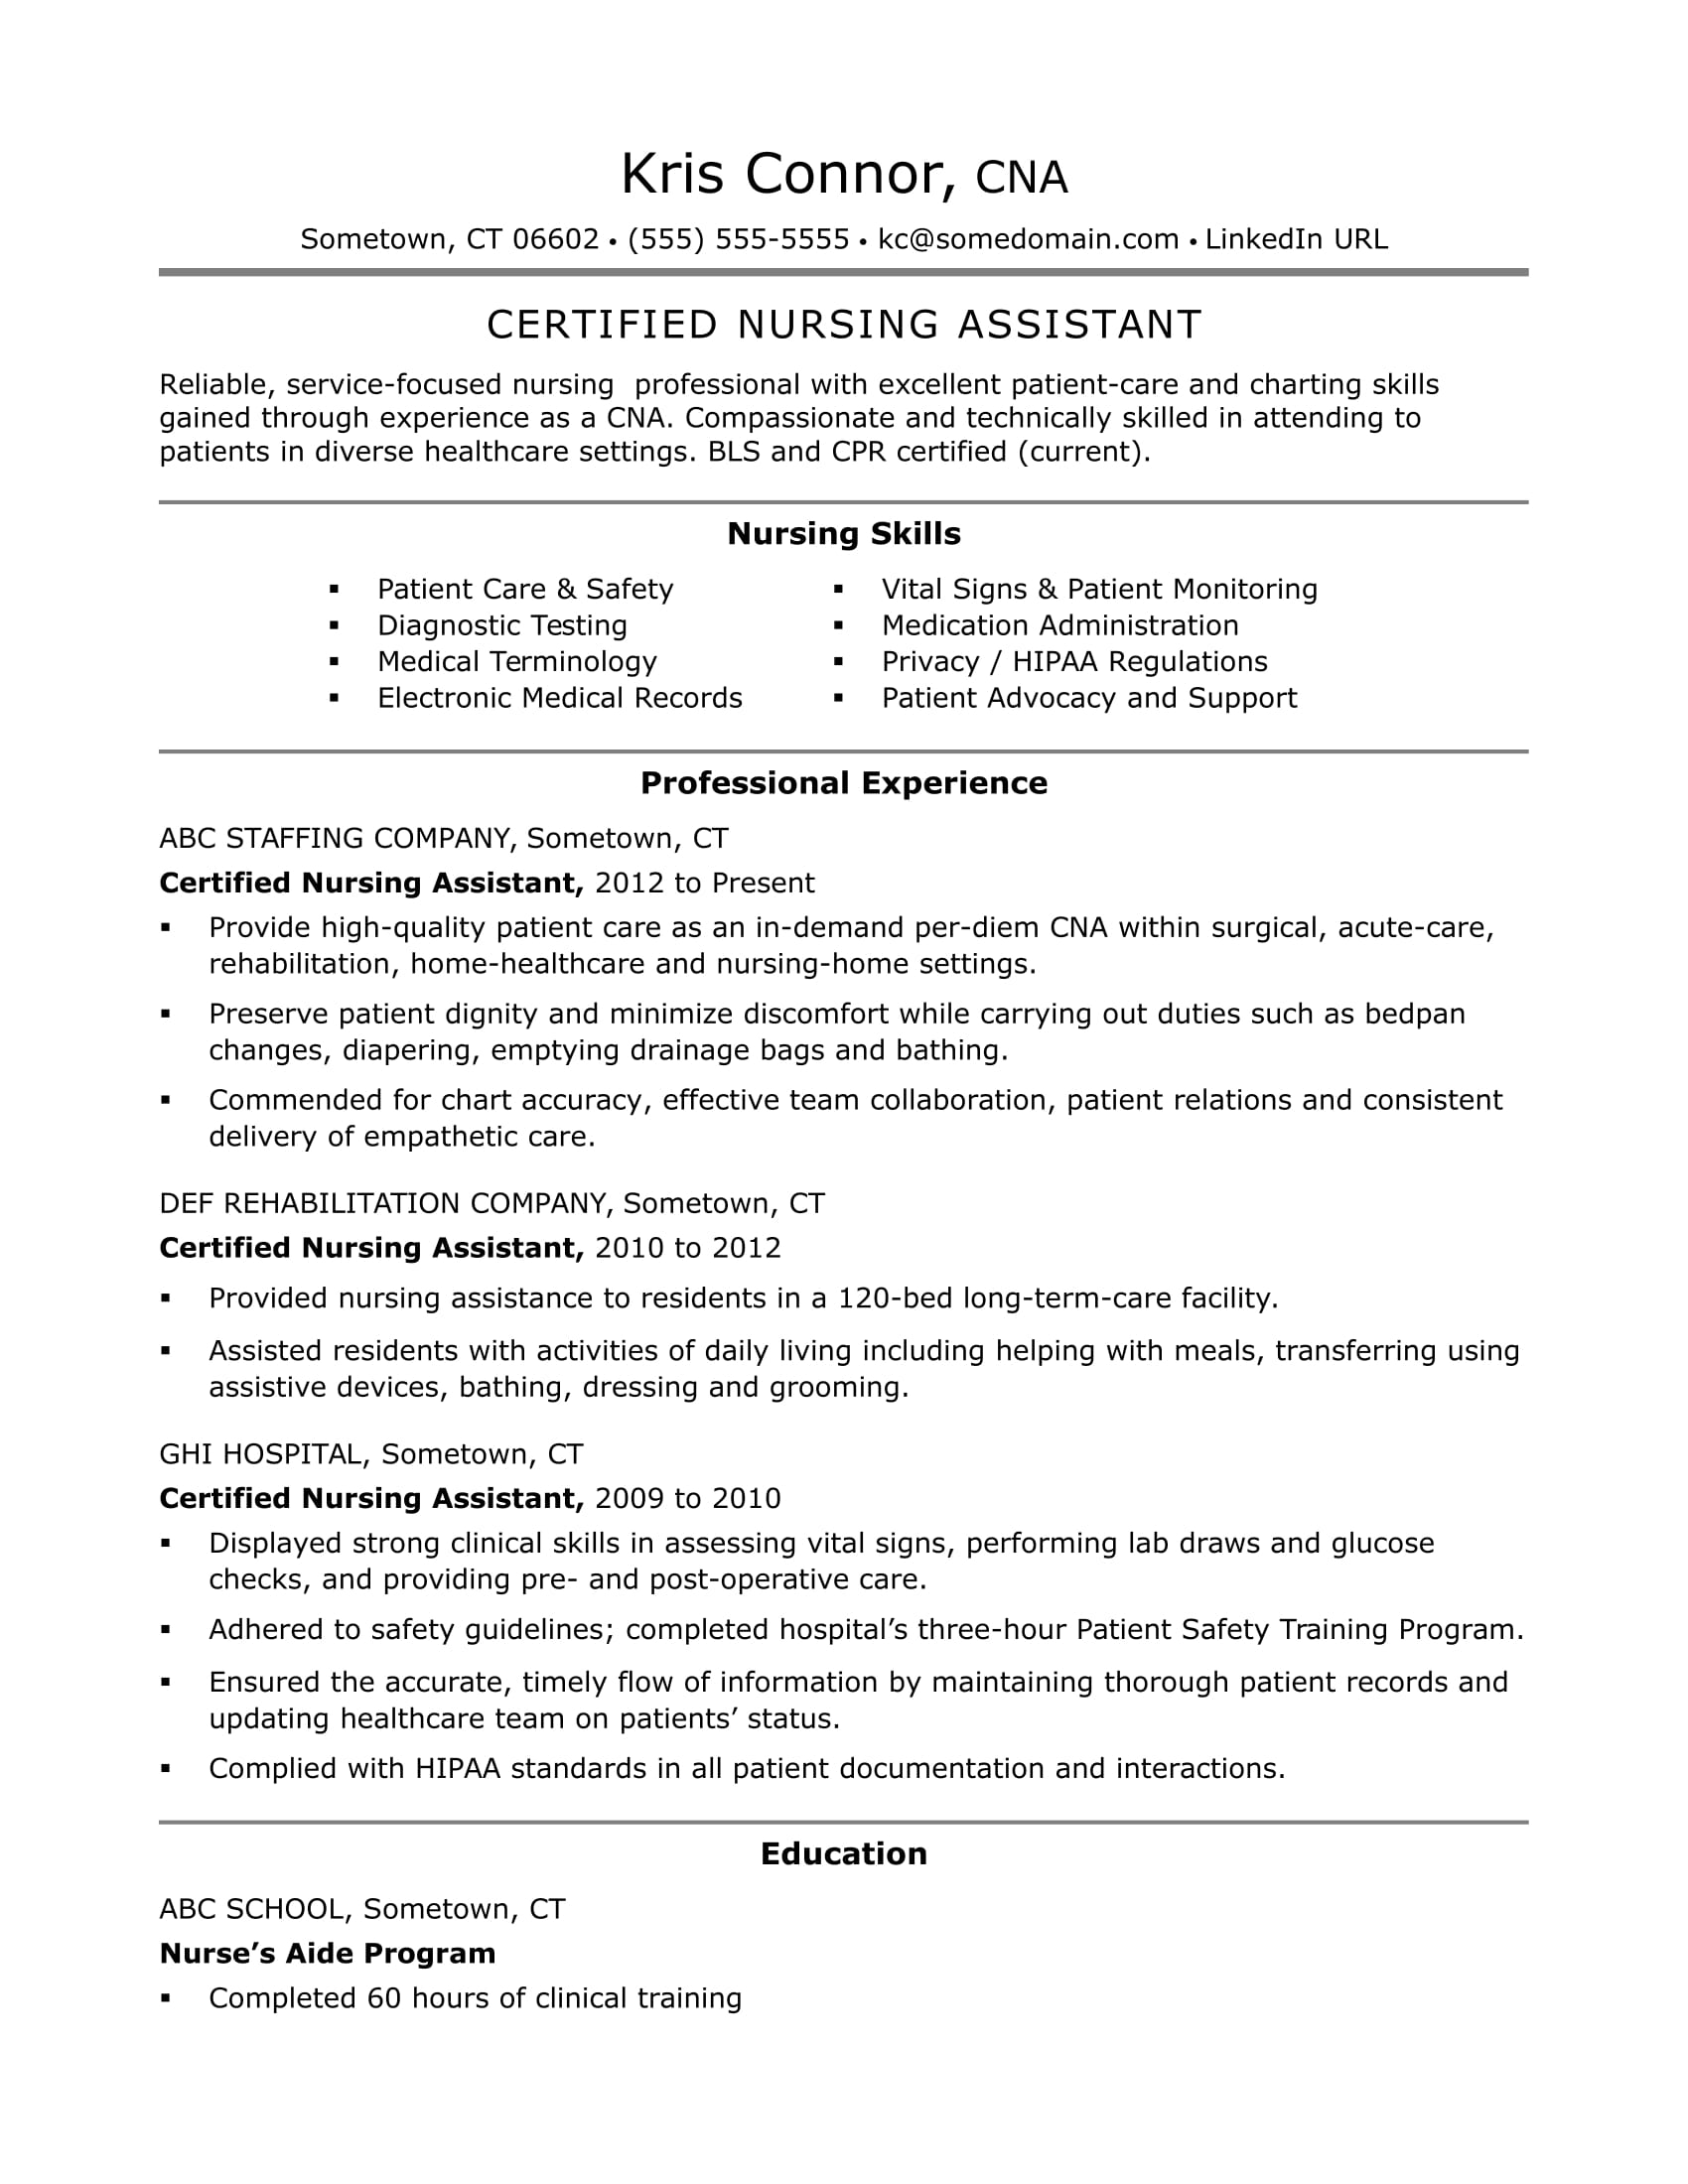 cna resume examples skills for cnas monster certified nursing assistant zety free trial Resume Certified Nursing Assistant Resume